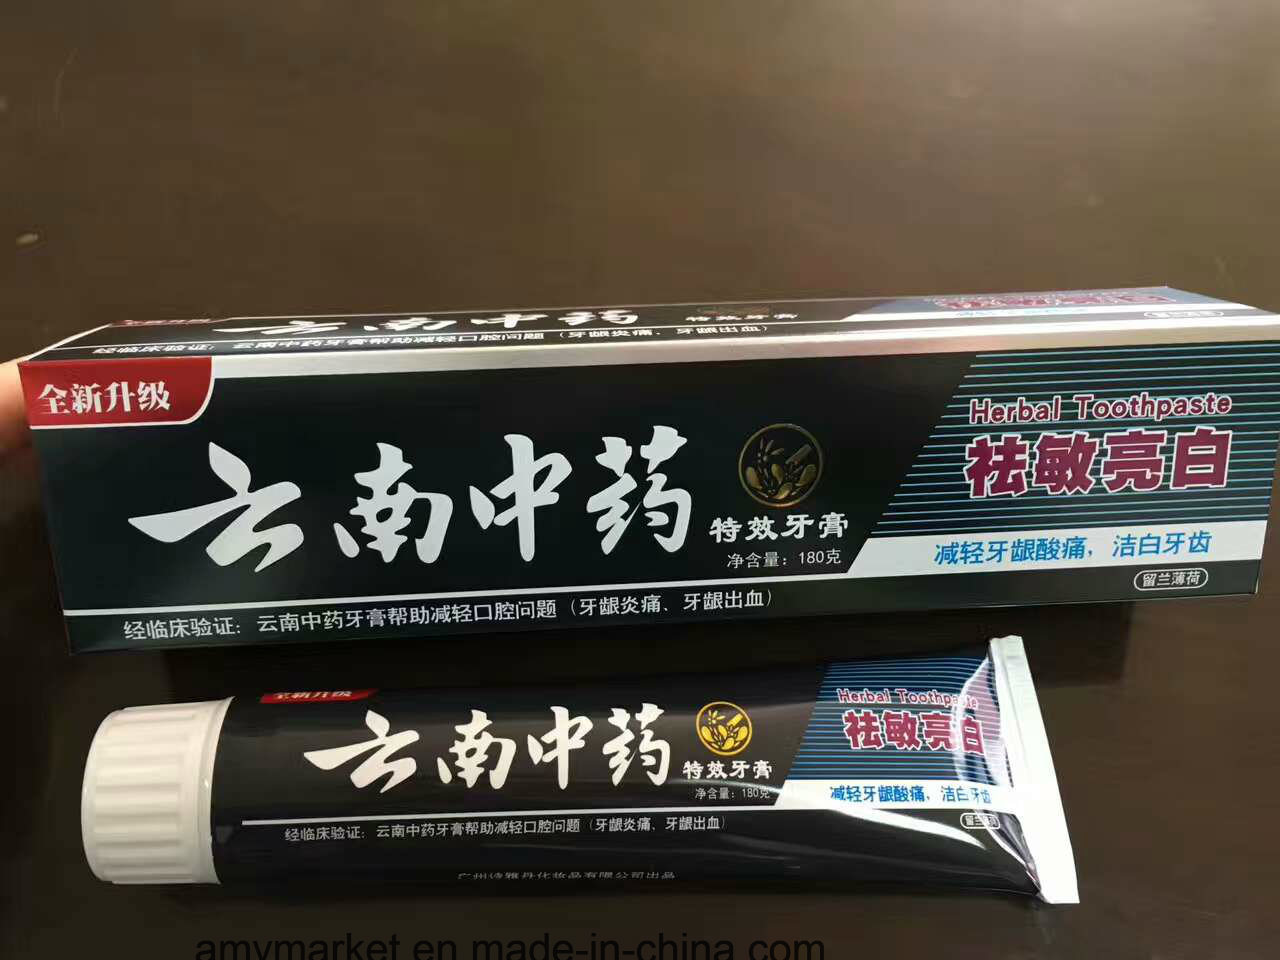 Chinese Unique Herbal Toothpaste Spearmint Minty Relieve Swelling and Pain Dental Cream for Adult 180g/PCS